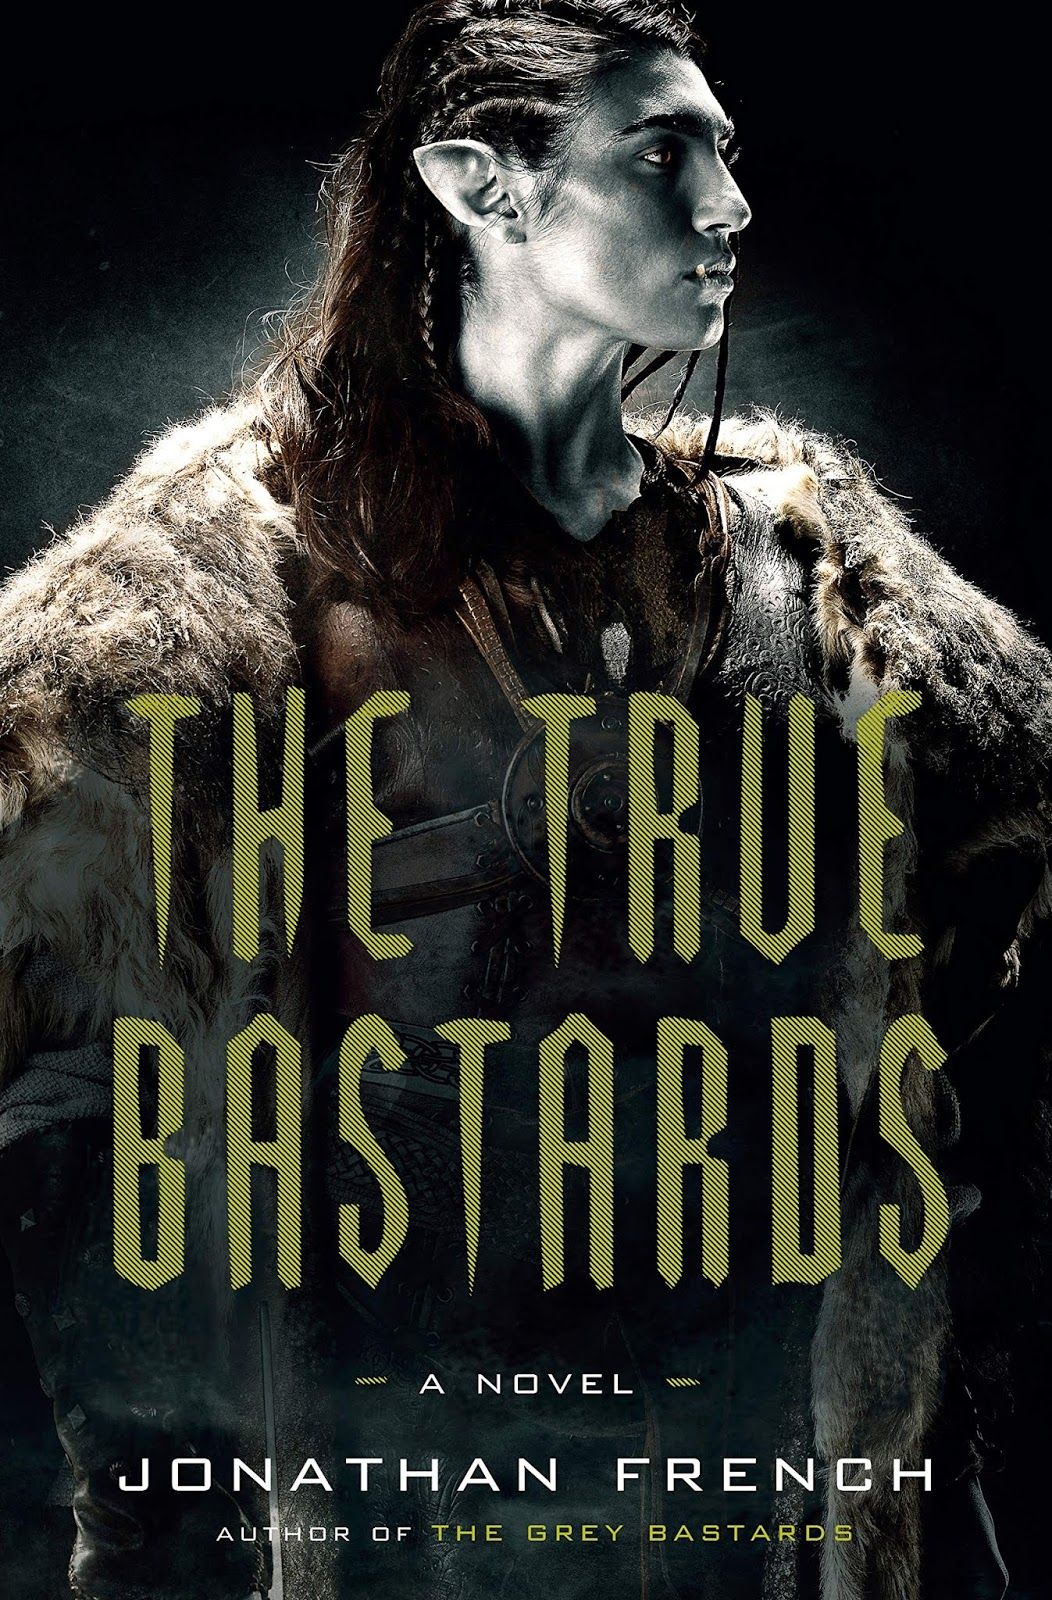 The True Bastards by Jonathan French